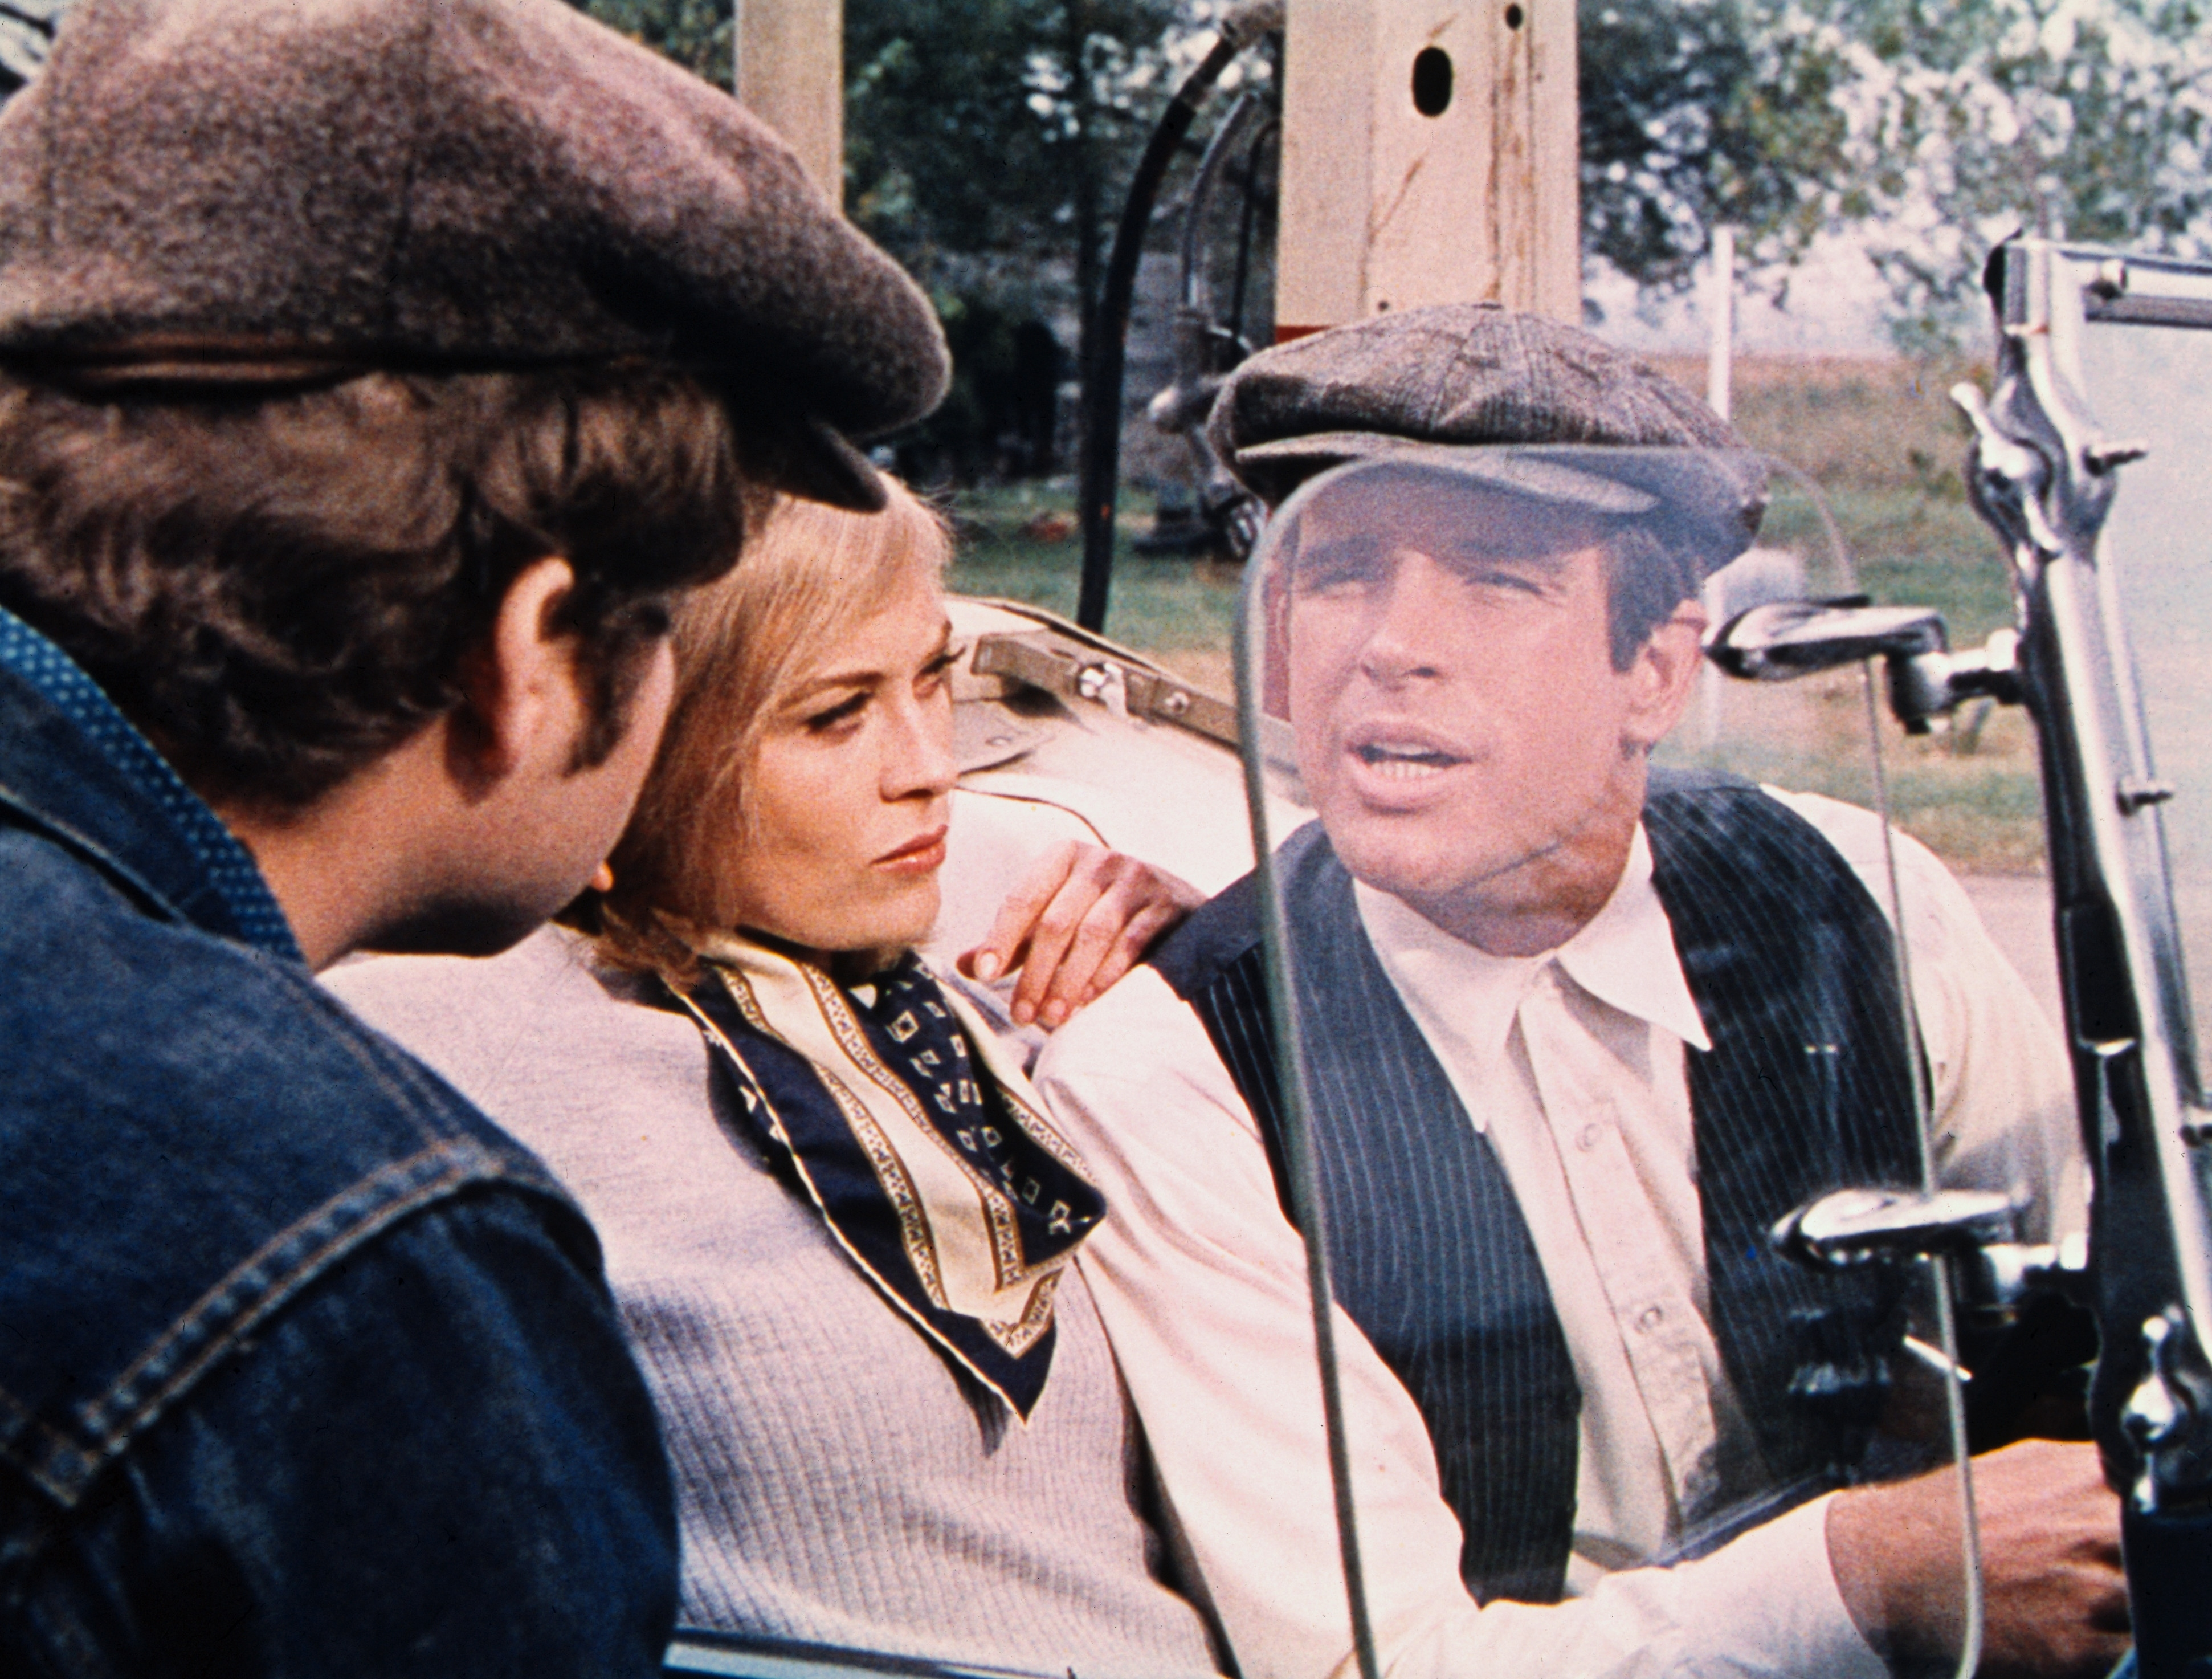 Scenes from the movie Bonnie and Clyde with Warren Beatty and Faye Dunaway. Produced by Warner Brothers Studios.